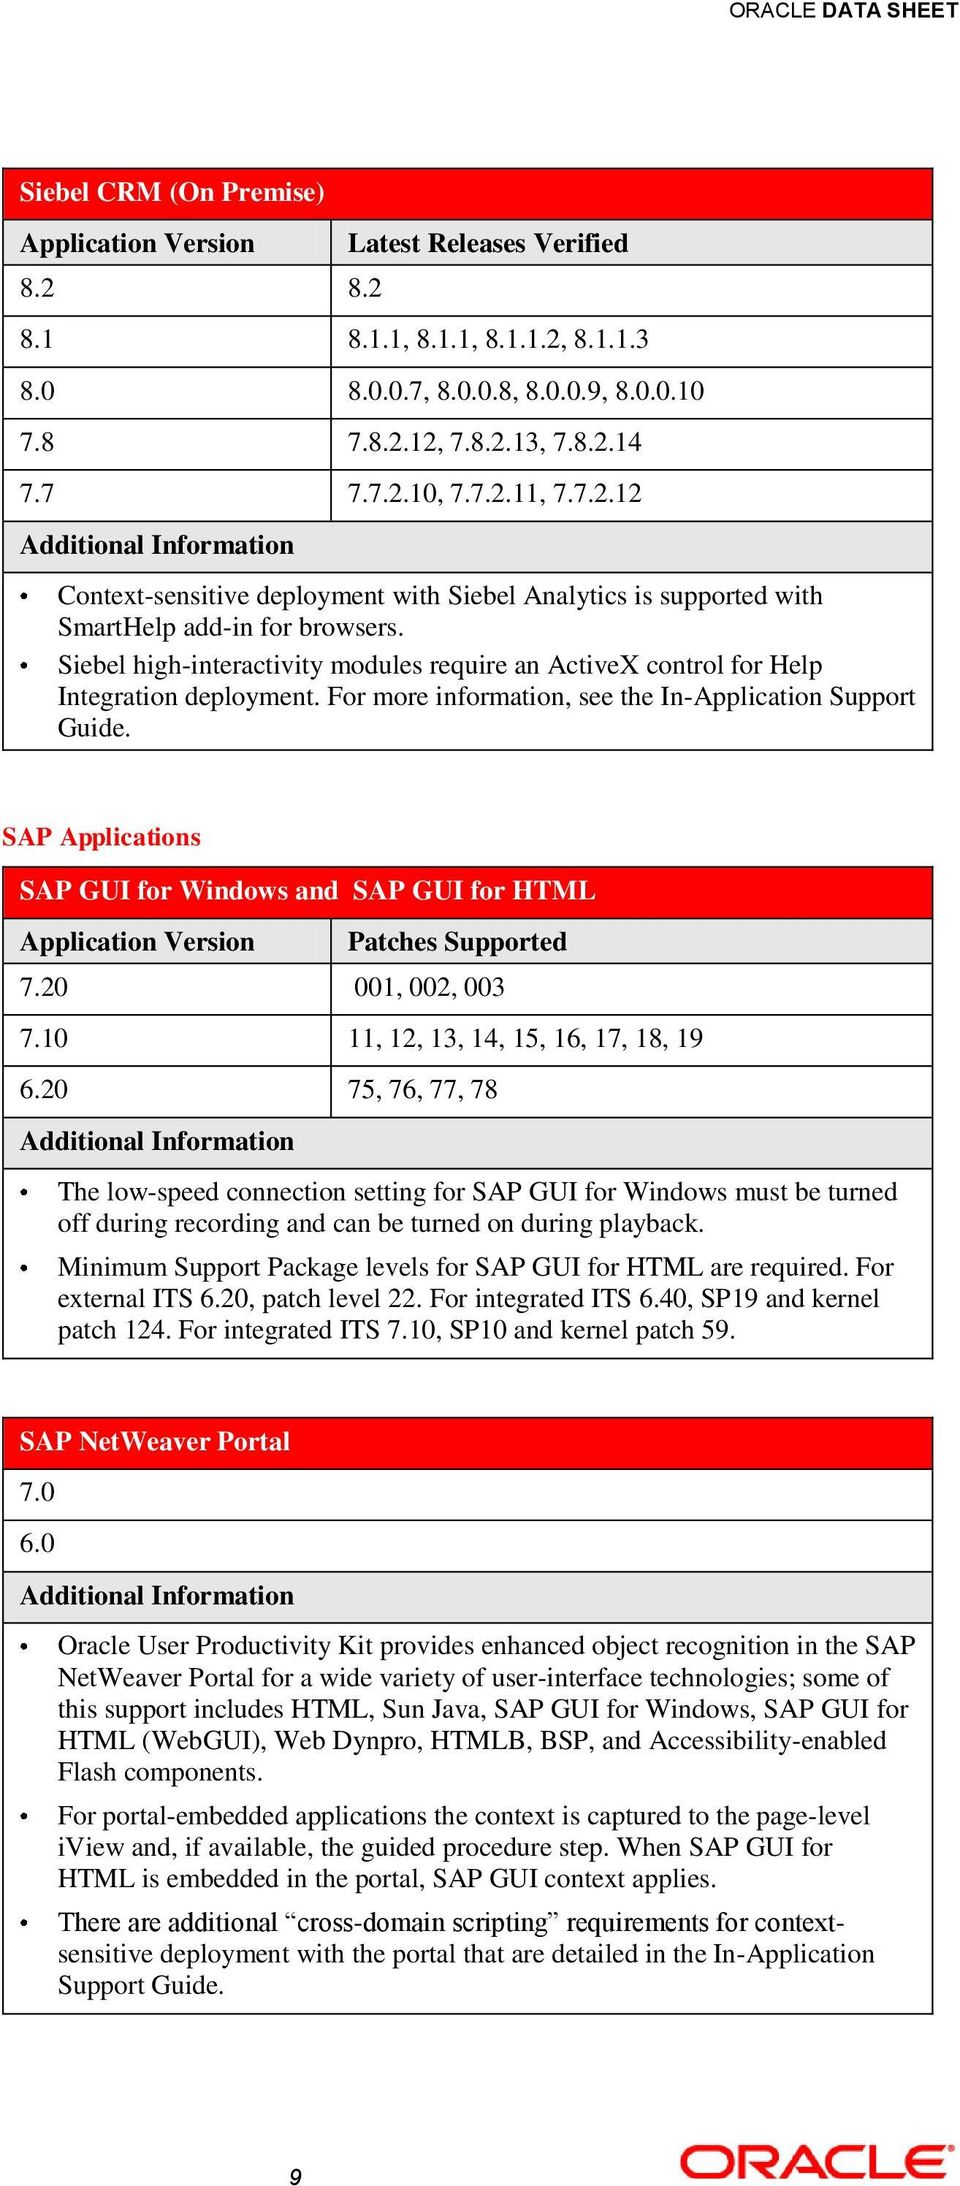 SAP Applications SAP GUI for Windows and SAP GUI for HTML Patches Supported 7.20 001, 002, 003 7.10 11, 12, 13, 14, 15, 16, 17, 18, 19 6.